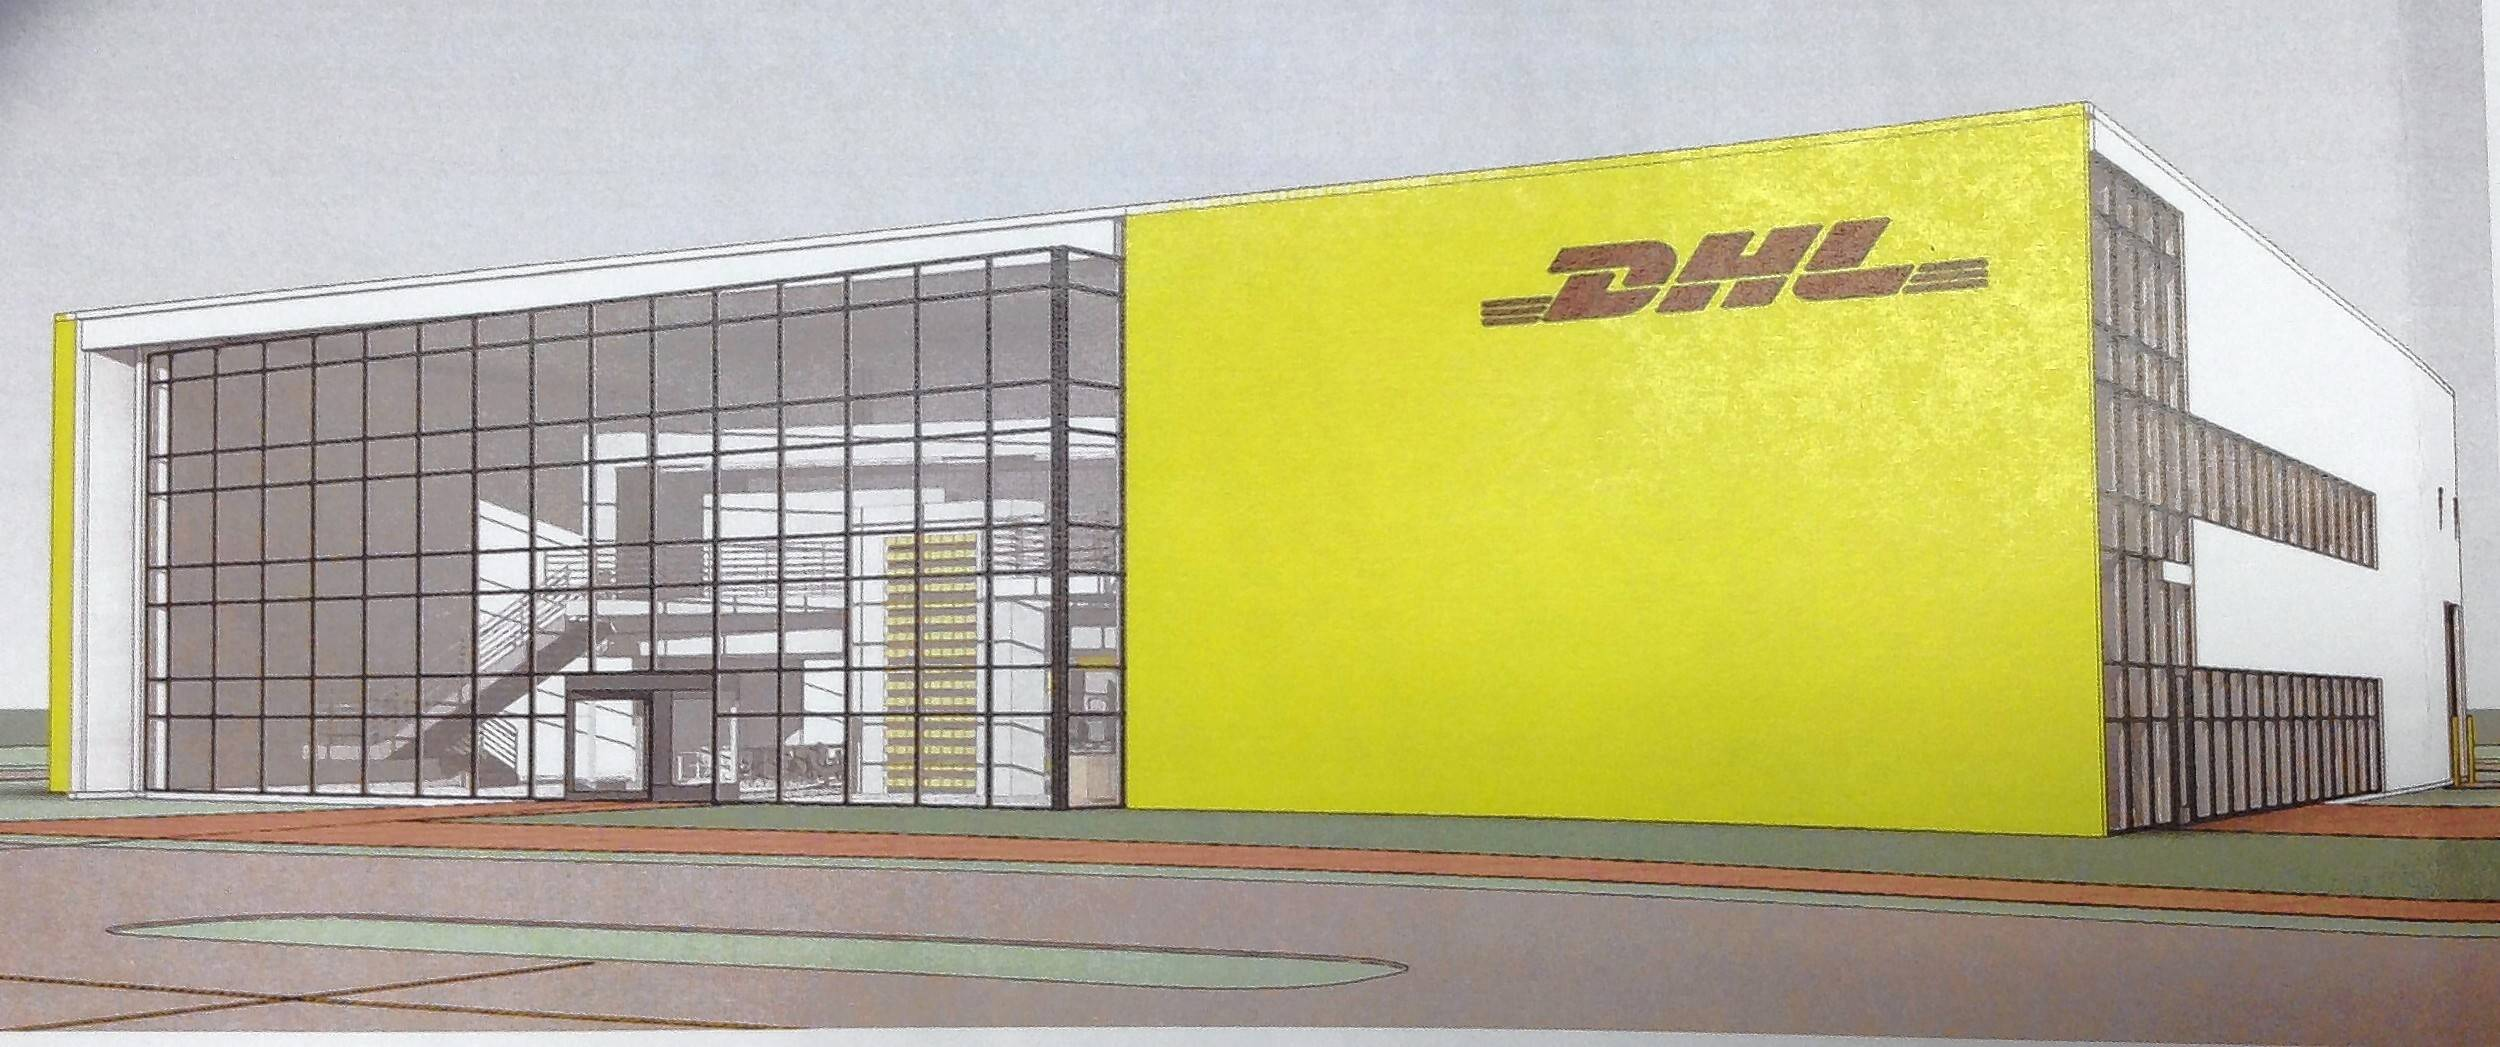 DHL to open 'Innovation Center' in Rosemont